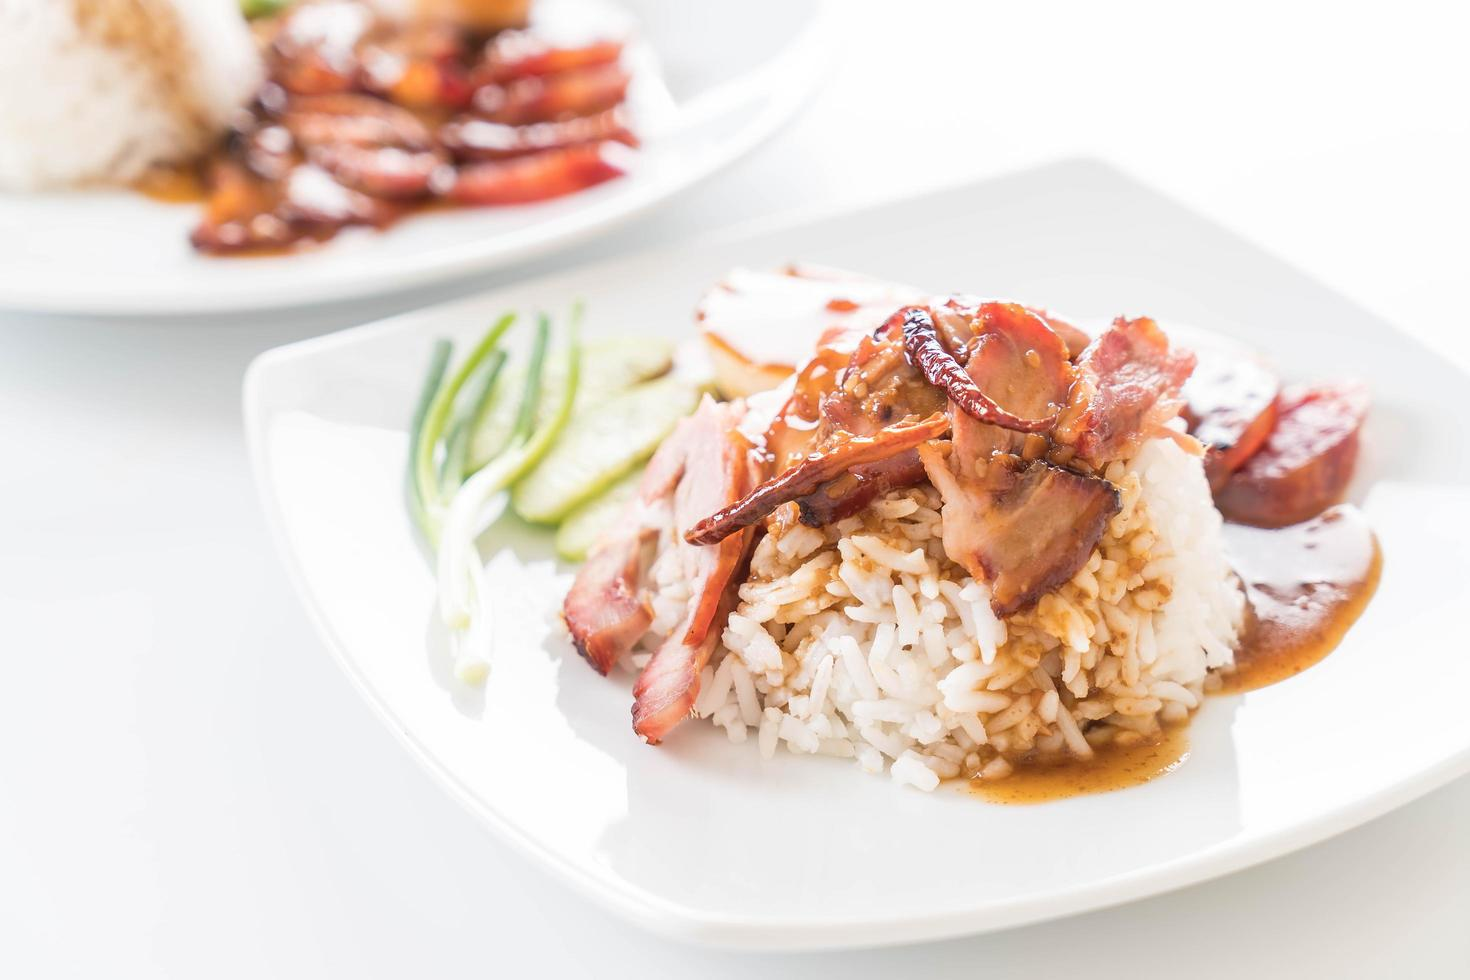 Barbecued red pork in sauce with rice photo